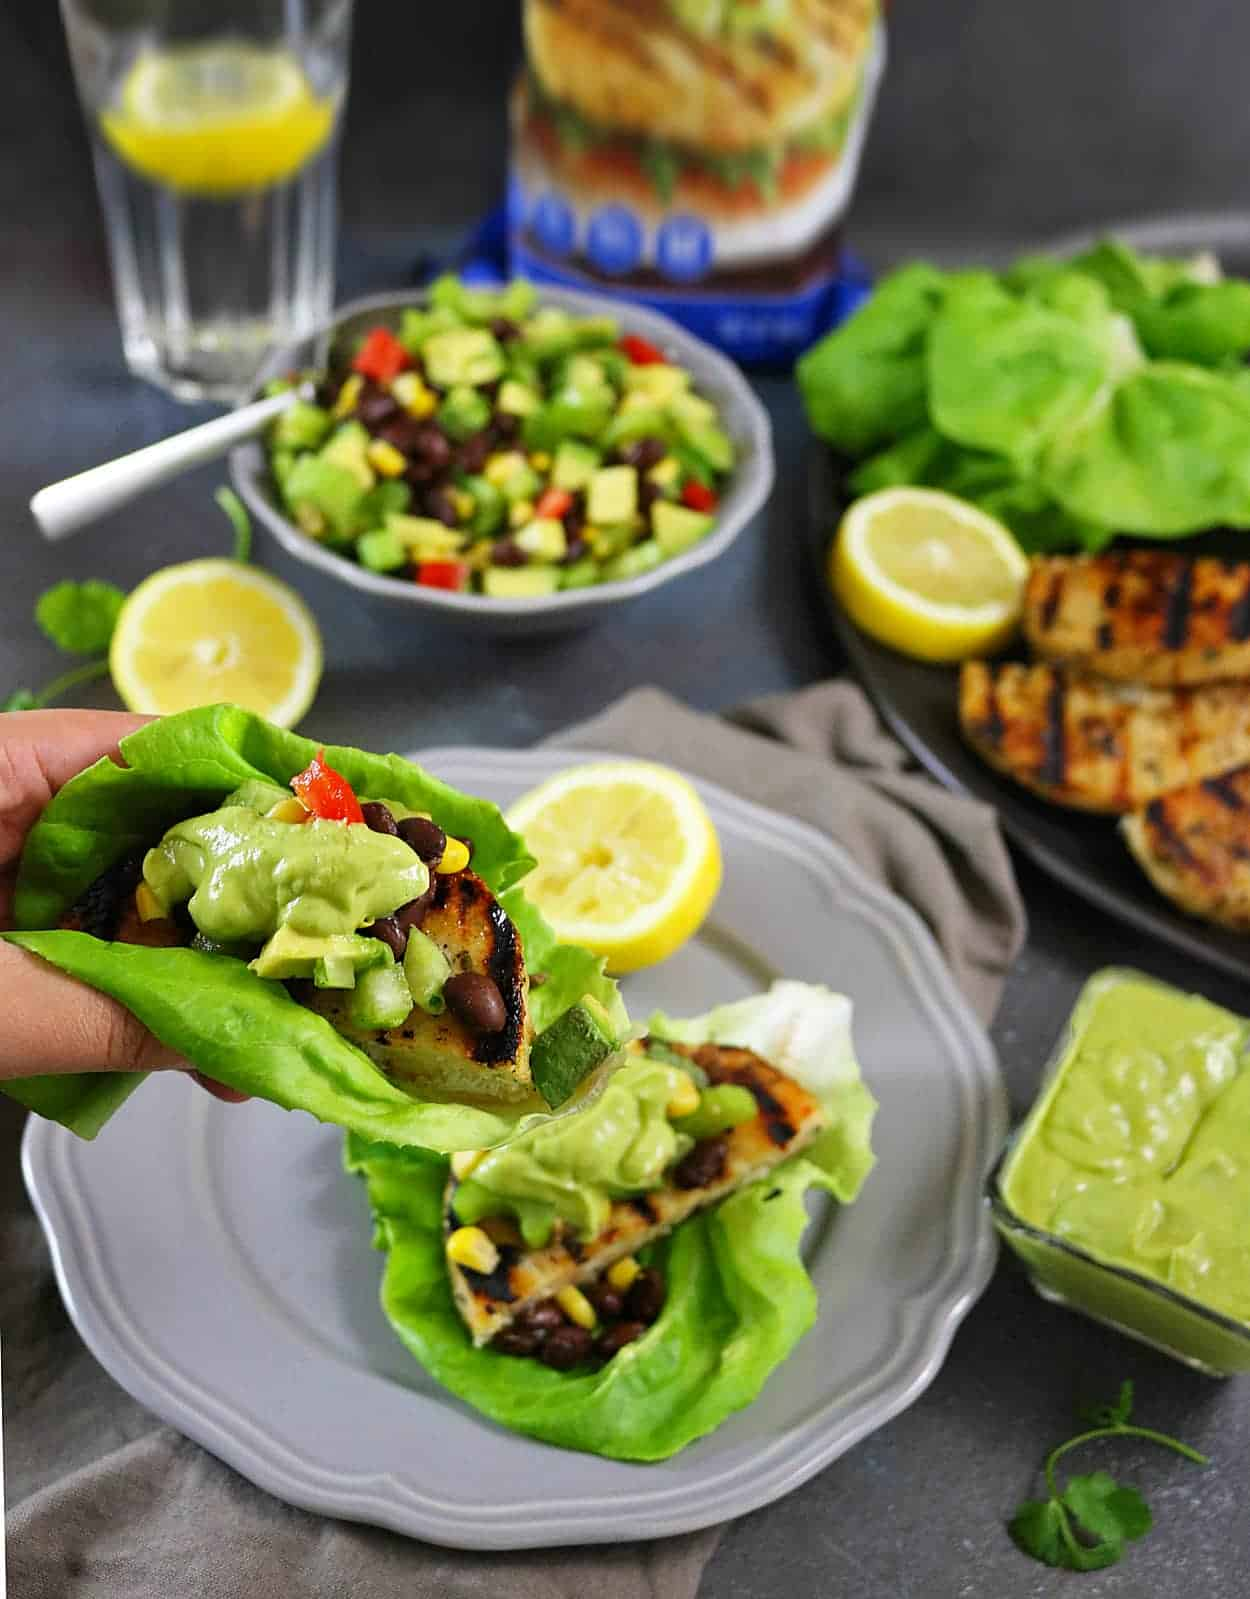 Pollock Burgers In Lettuce Wraps With Celery Avocado Salsa And Horseradish Sauce - Such a quick and tasty dinner!